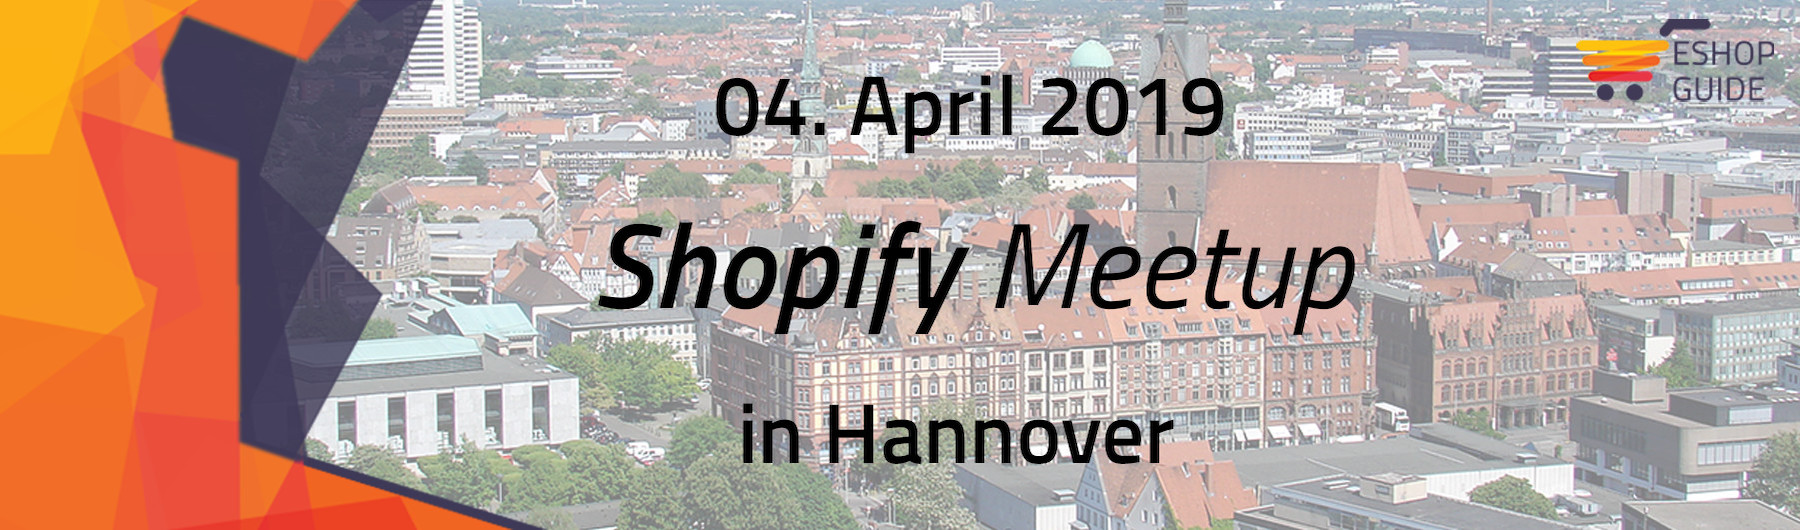 Shopify Meetup Hannover